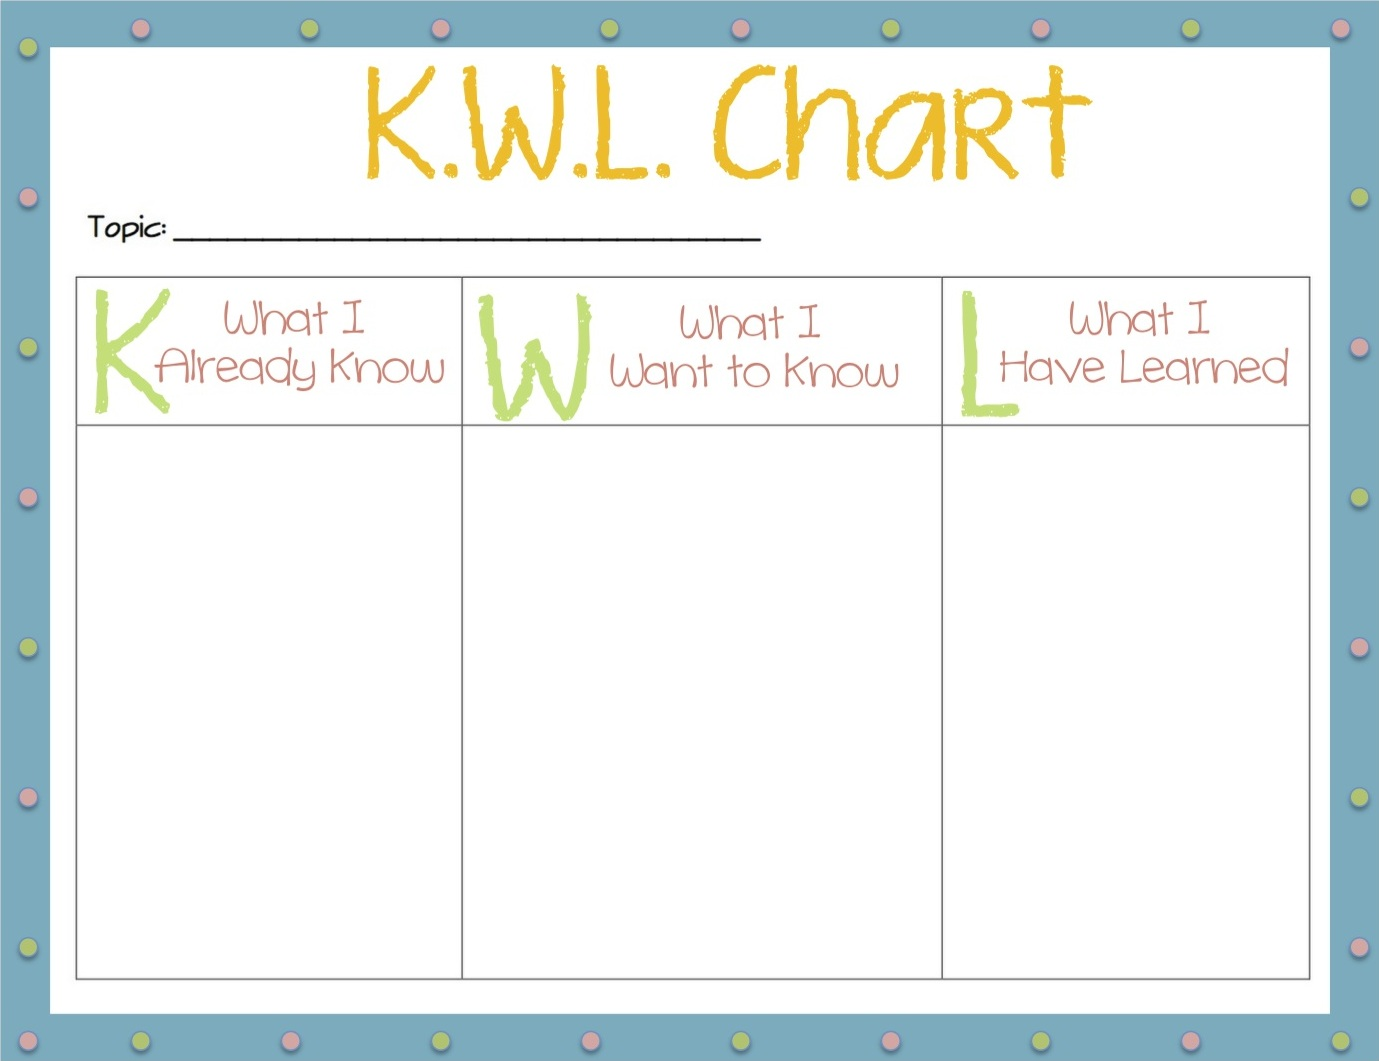 worksheet Kwl Worksheet kwl chart printable worksheet resignation letter writing tips table wikipedia kwlcharttemplateprintables was not something i used a